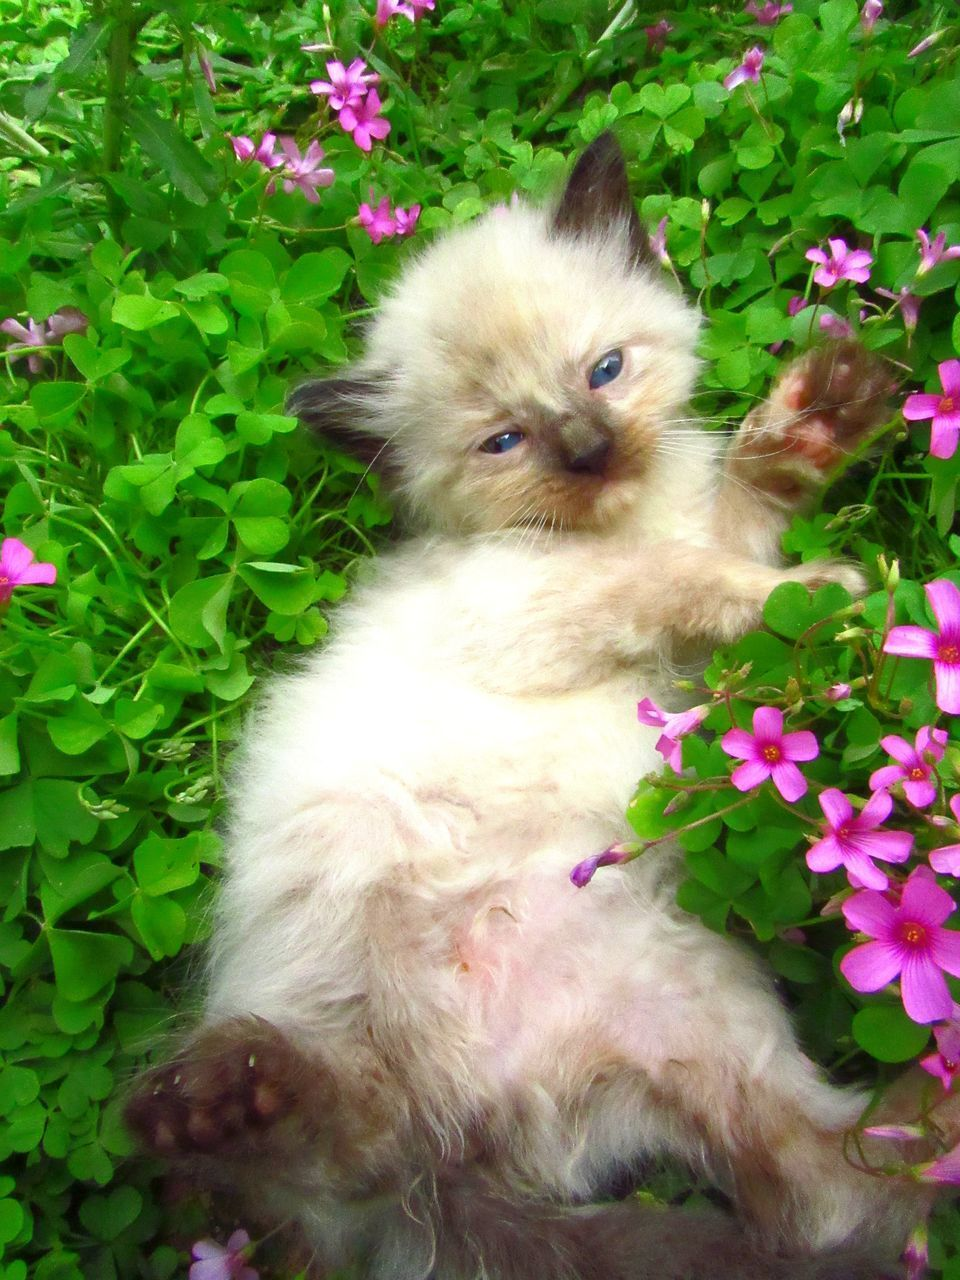 pets, domestic, mammal, domestic animals, animal themes, animal, flower, plant, flowering plant, one animal, vertebrate, high angle view, nature, no people, plant part, cat, leaf, dog, canine, domestic cat